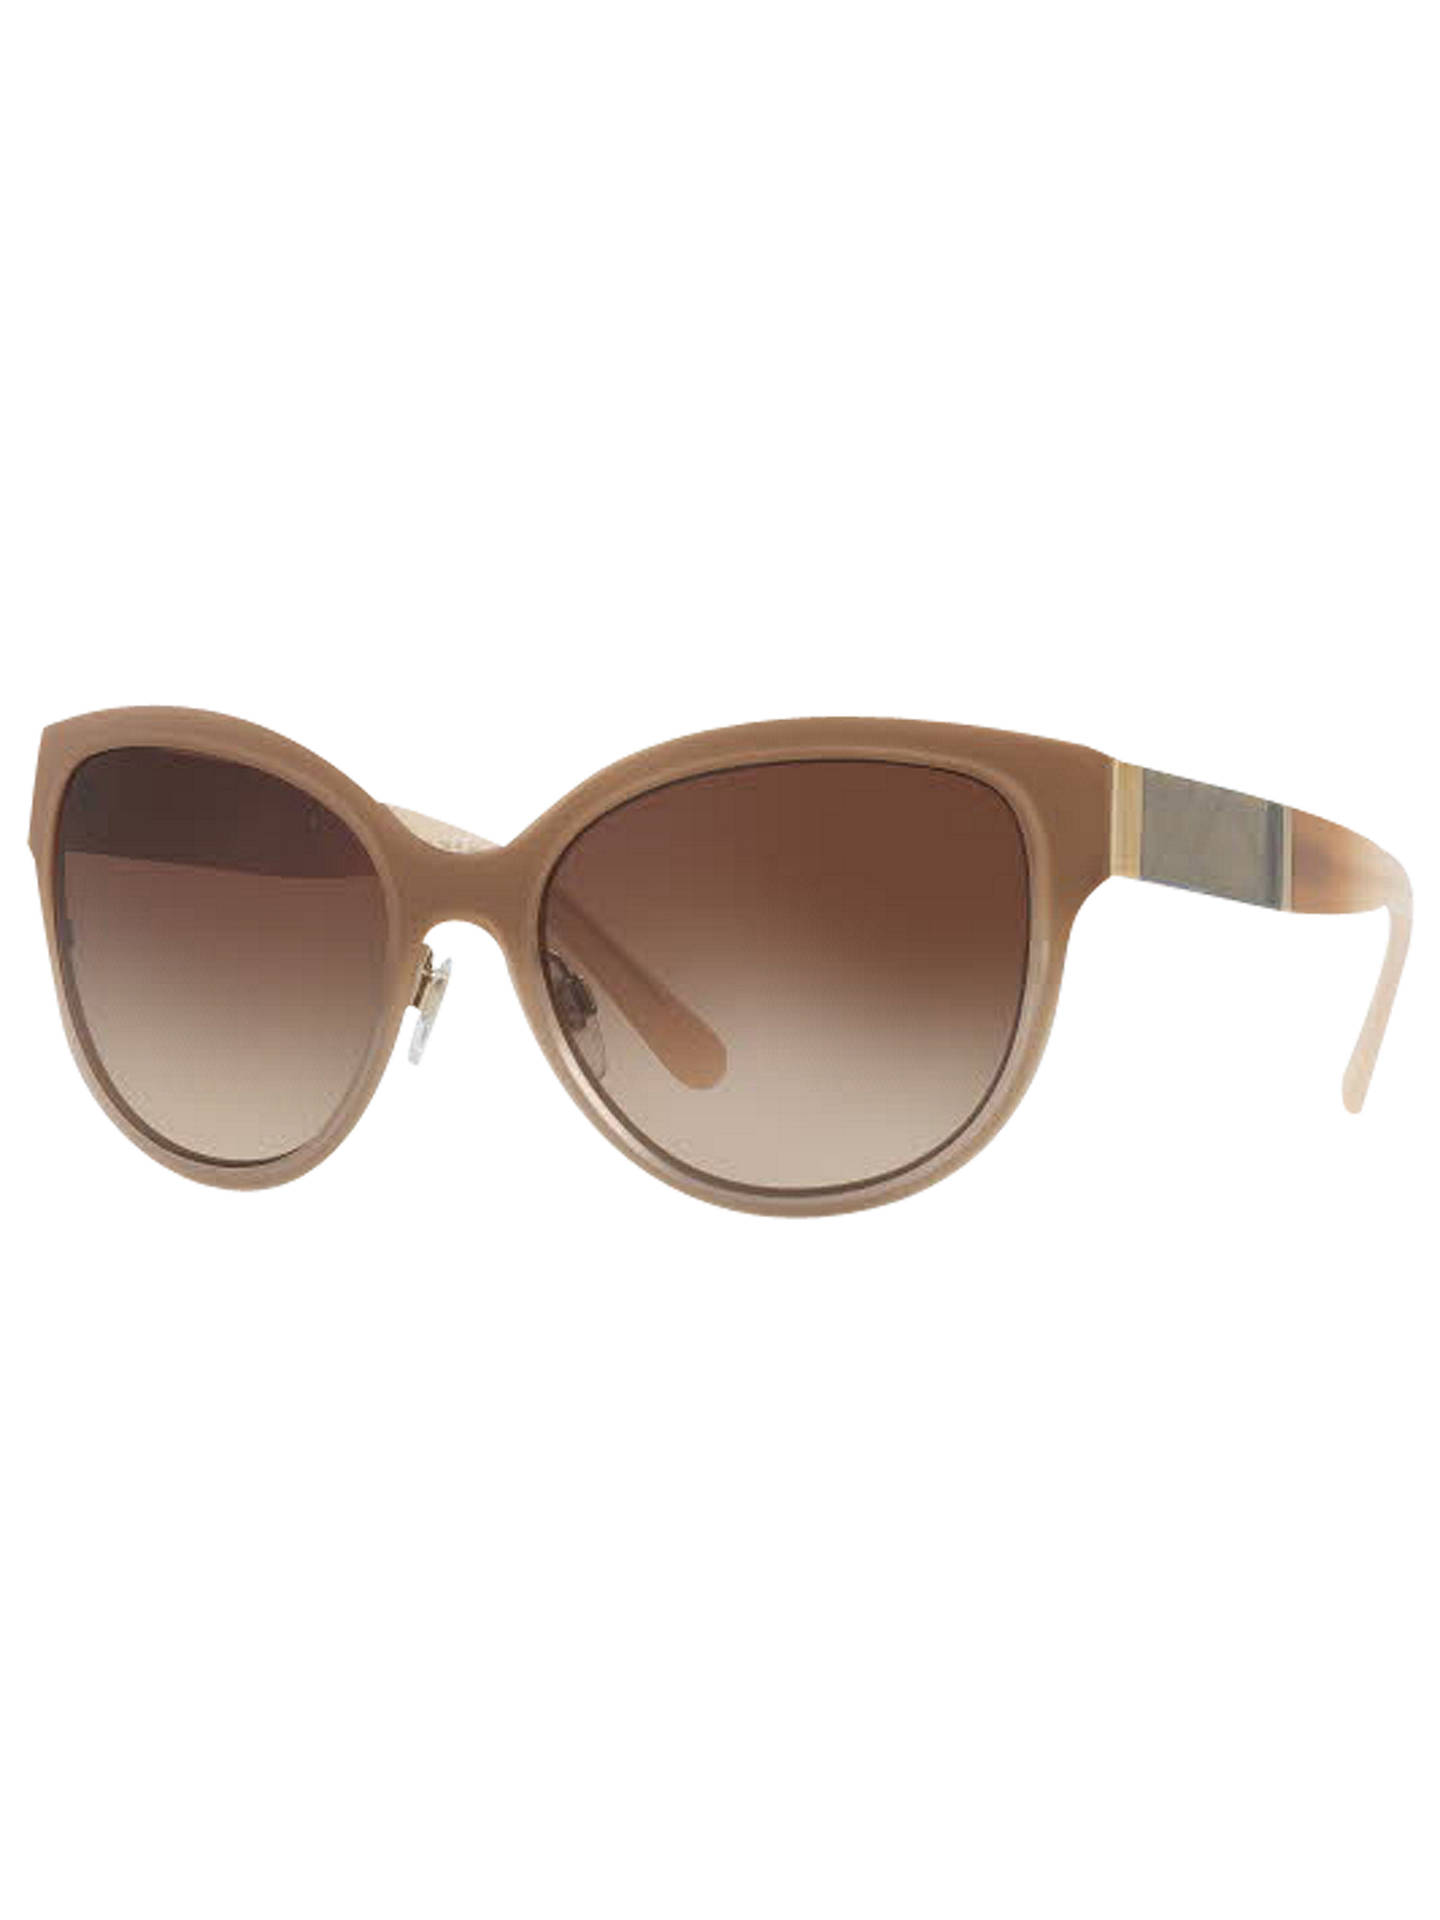 BuyBurberry BE3087 Oval Sunglasses, Camel/Gradient Brown Online at johnlewis.com